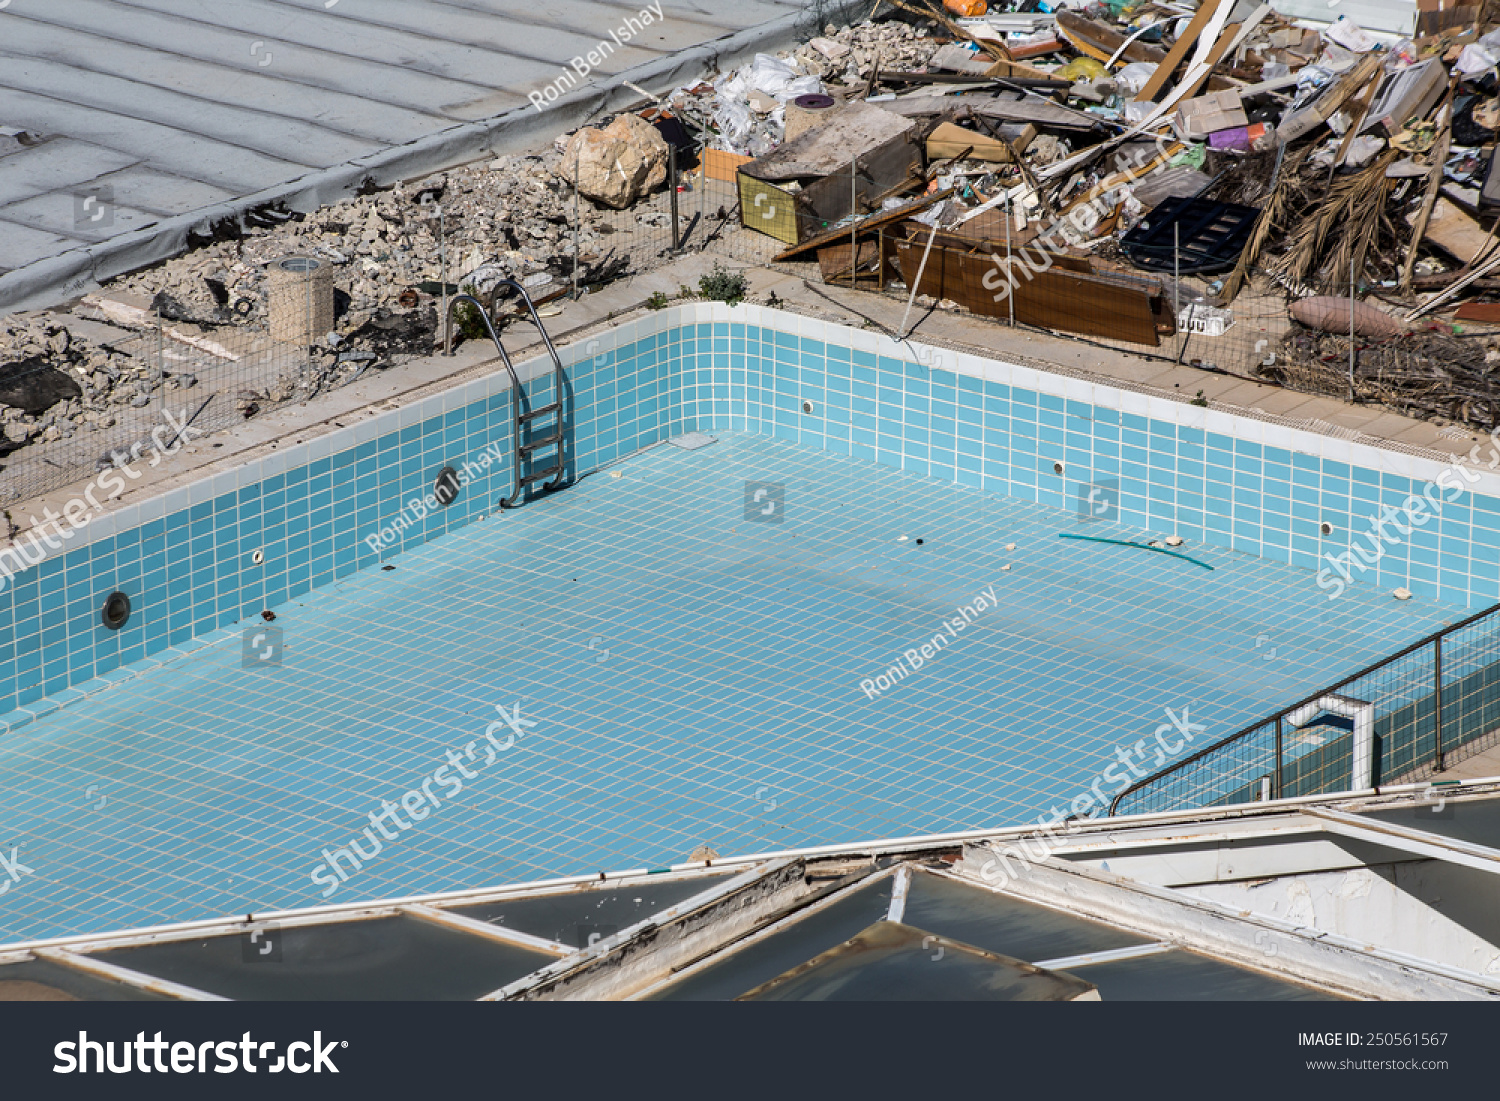 Abandoned Swimming Pool Hotel Stock Photo Edit Now 250561567